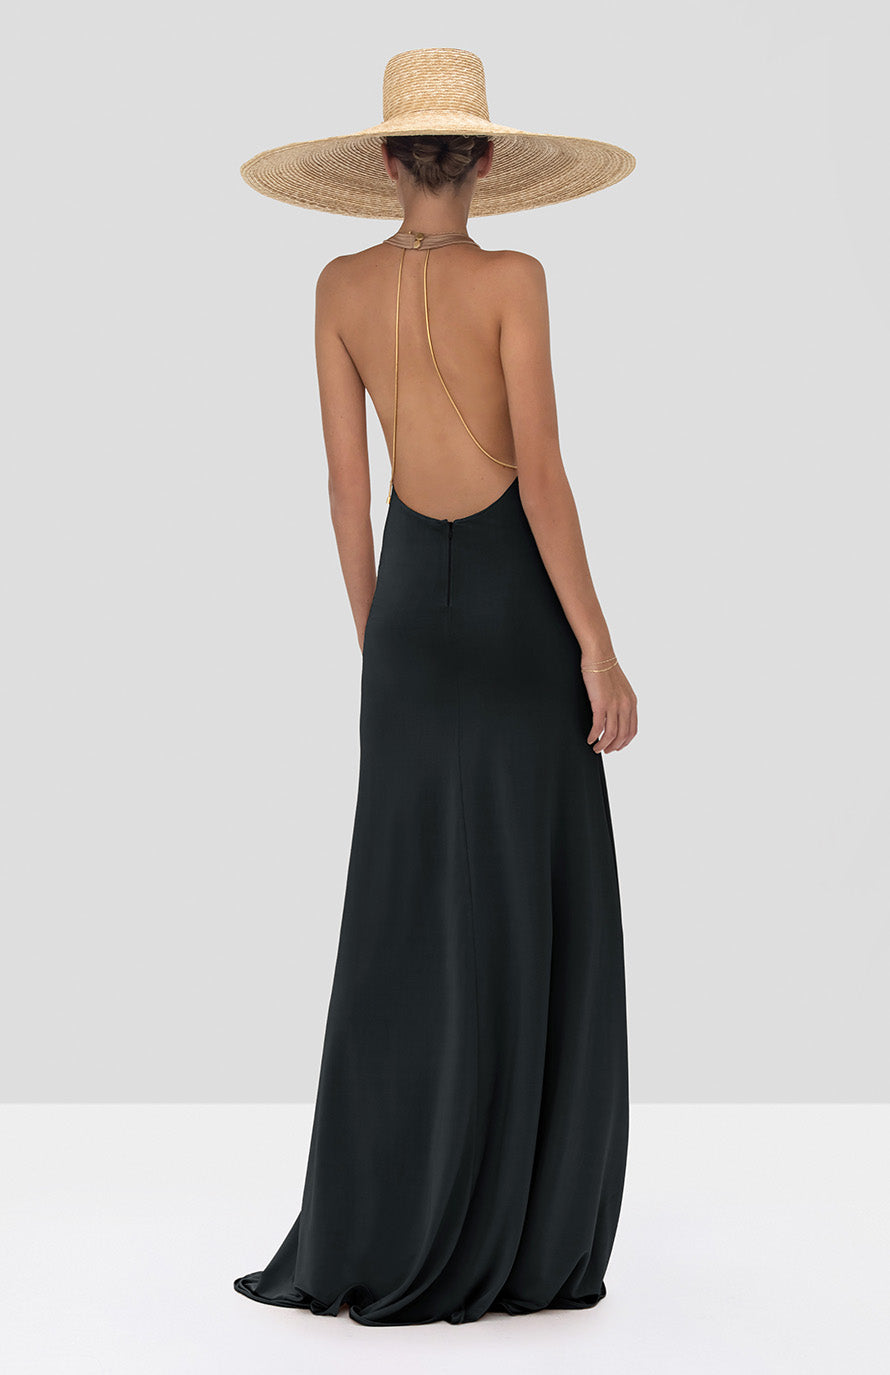 Alexis Xaverie Dress in Black from the Spring Summer 2020 Collection - Rear View